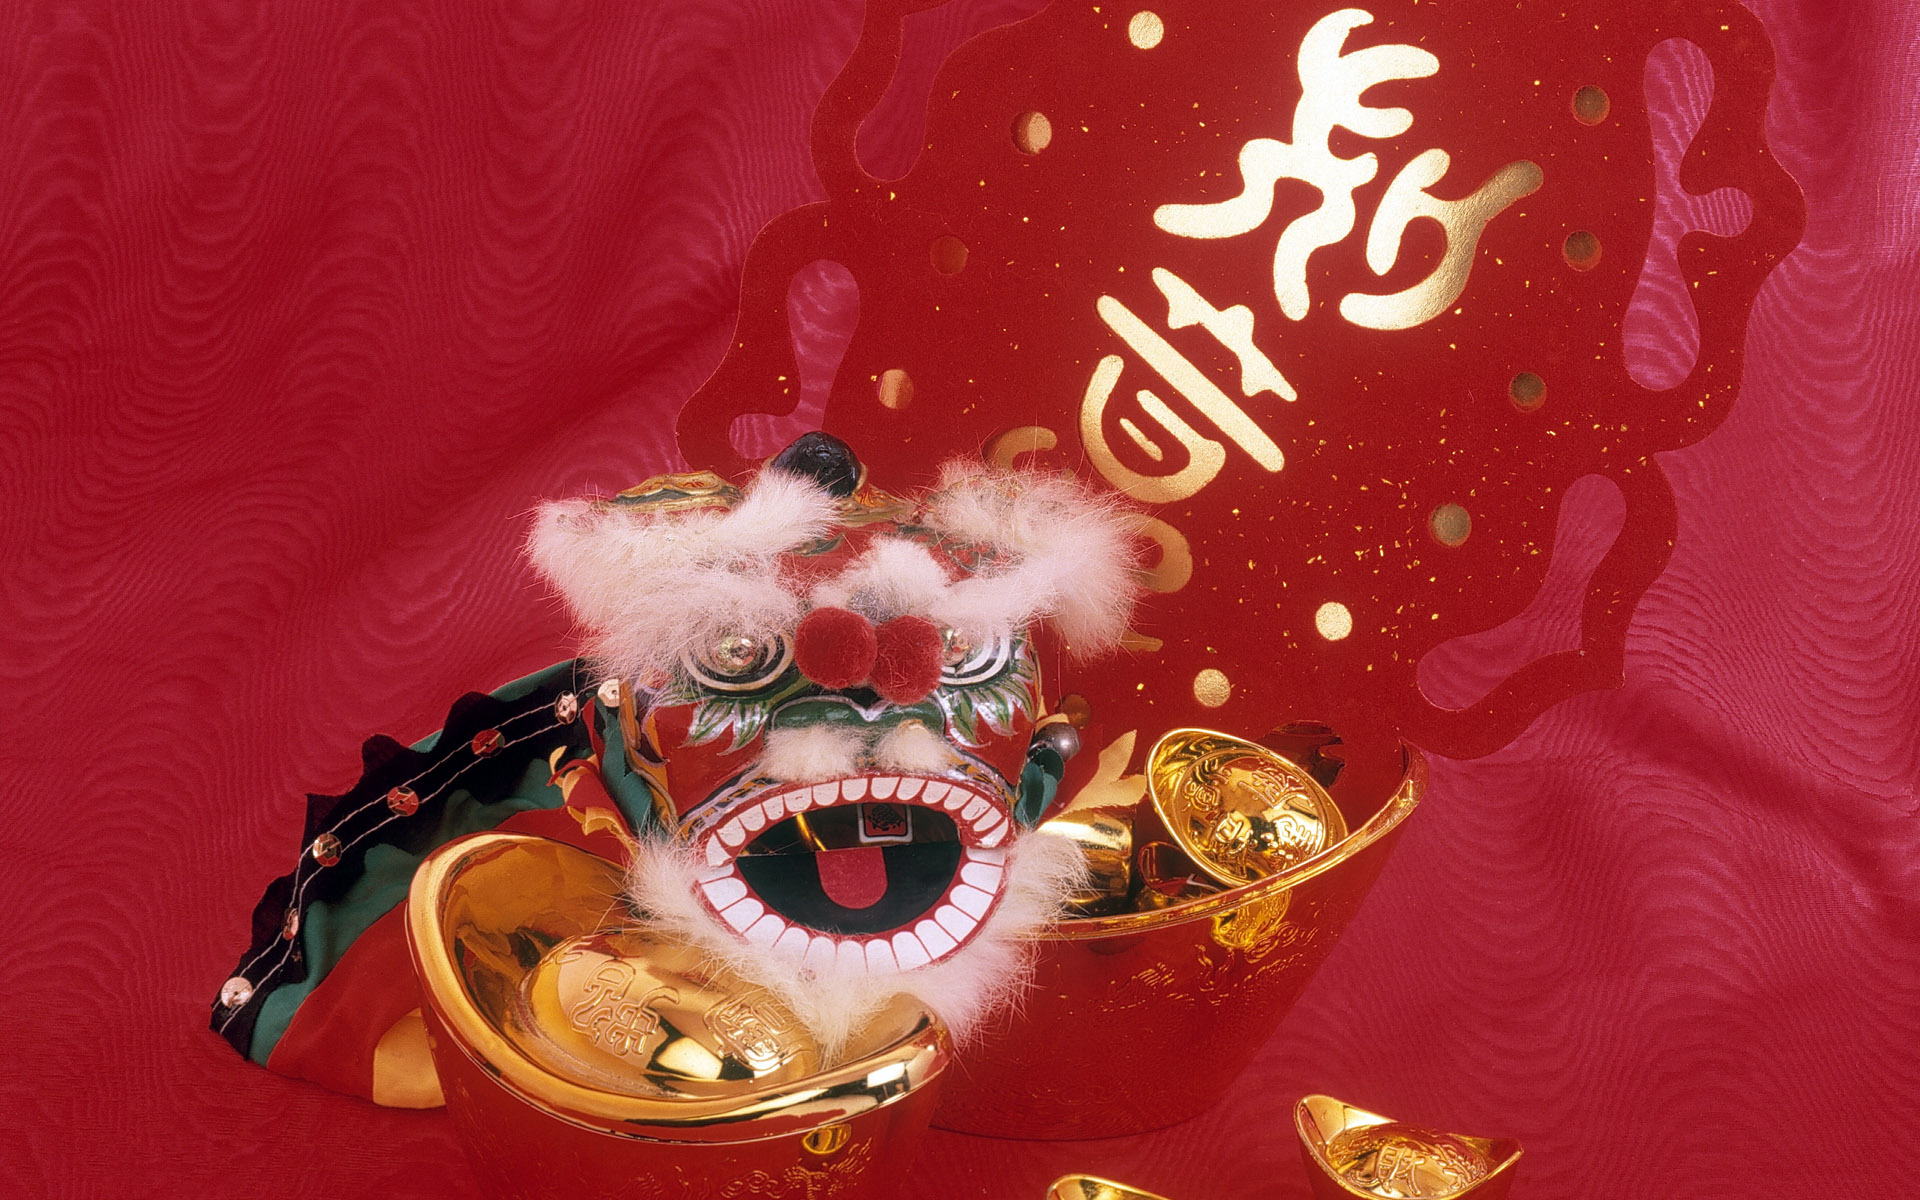 Happy Chinese New Year Wallpaper HD Image Pics